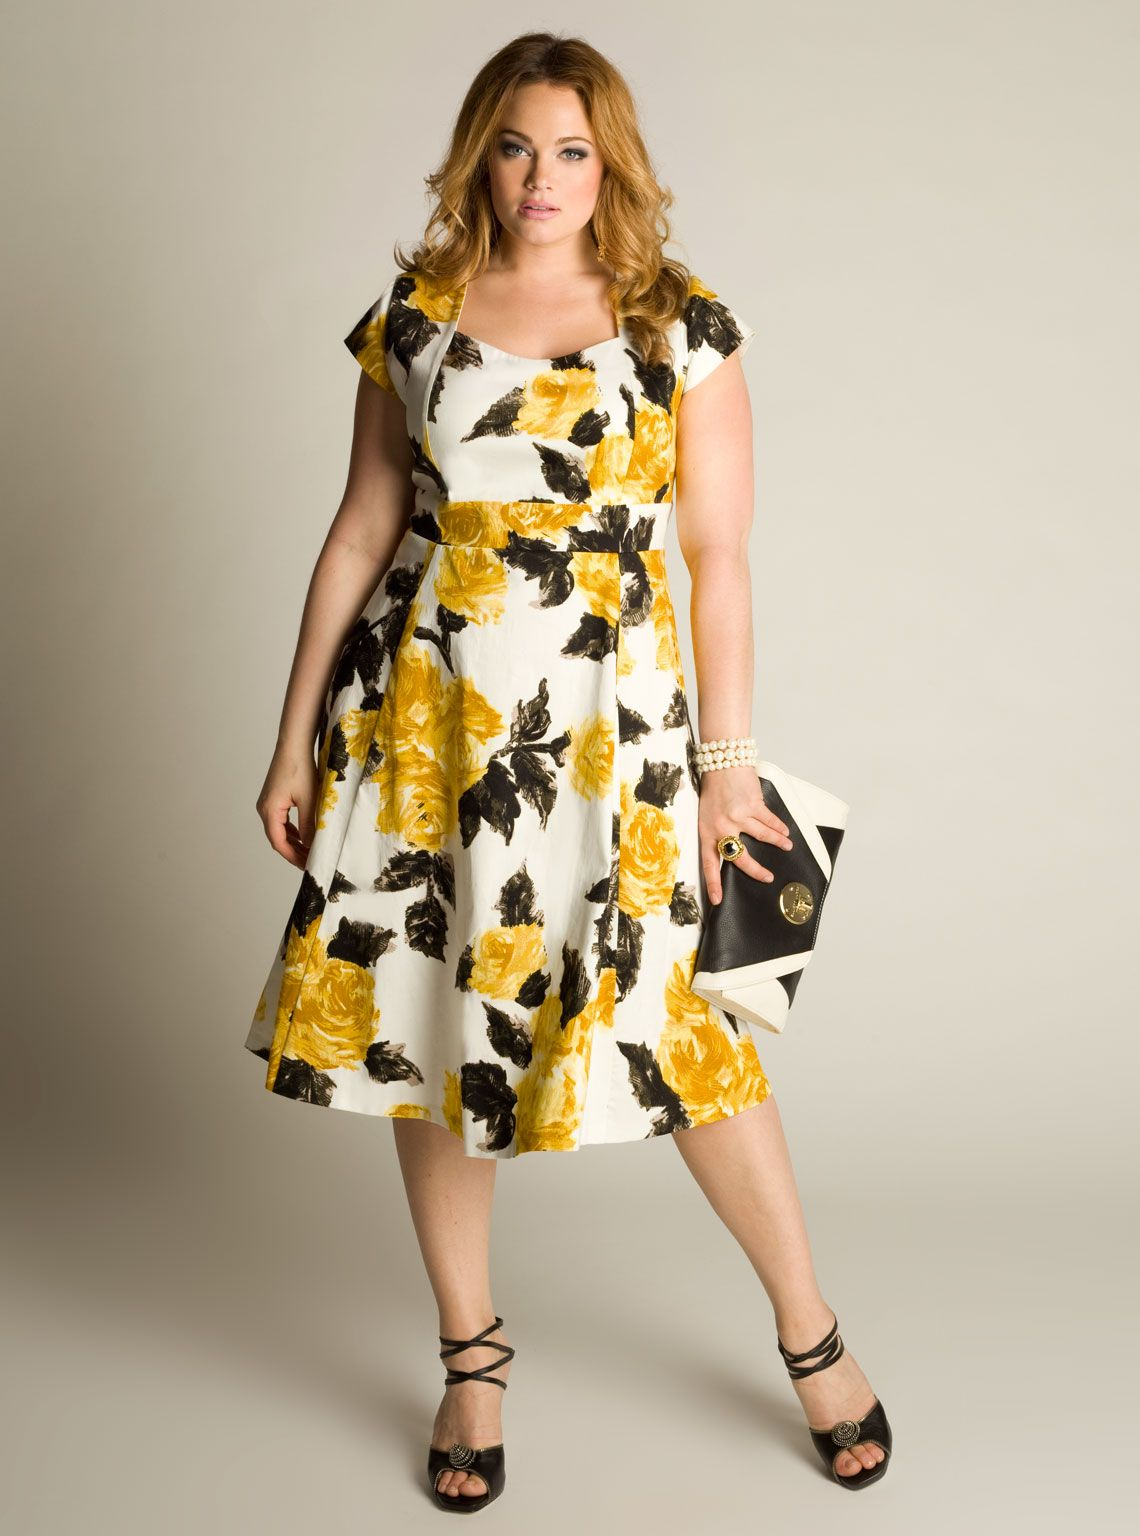 1950s Plus Size Dresses, Clothing | Plus size summer dresses ...